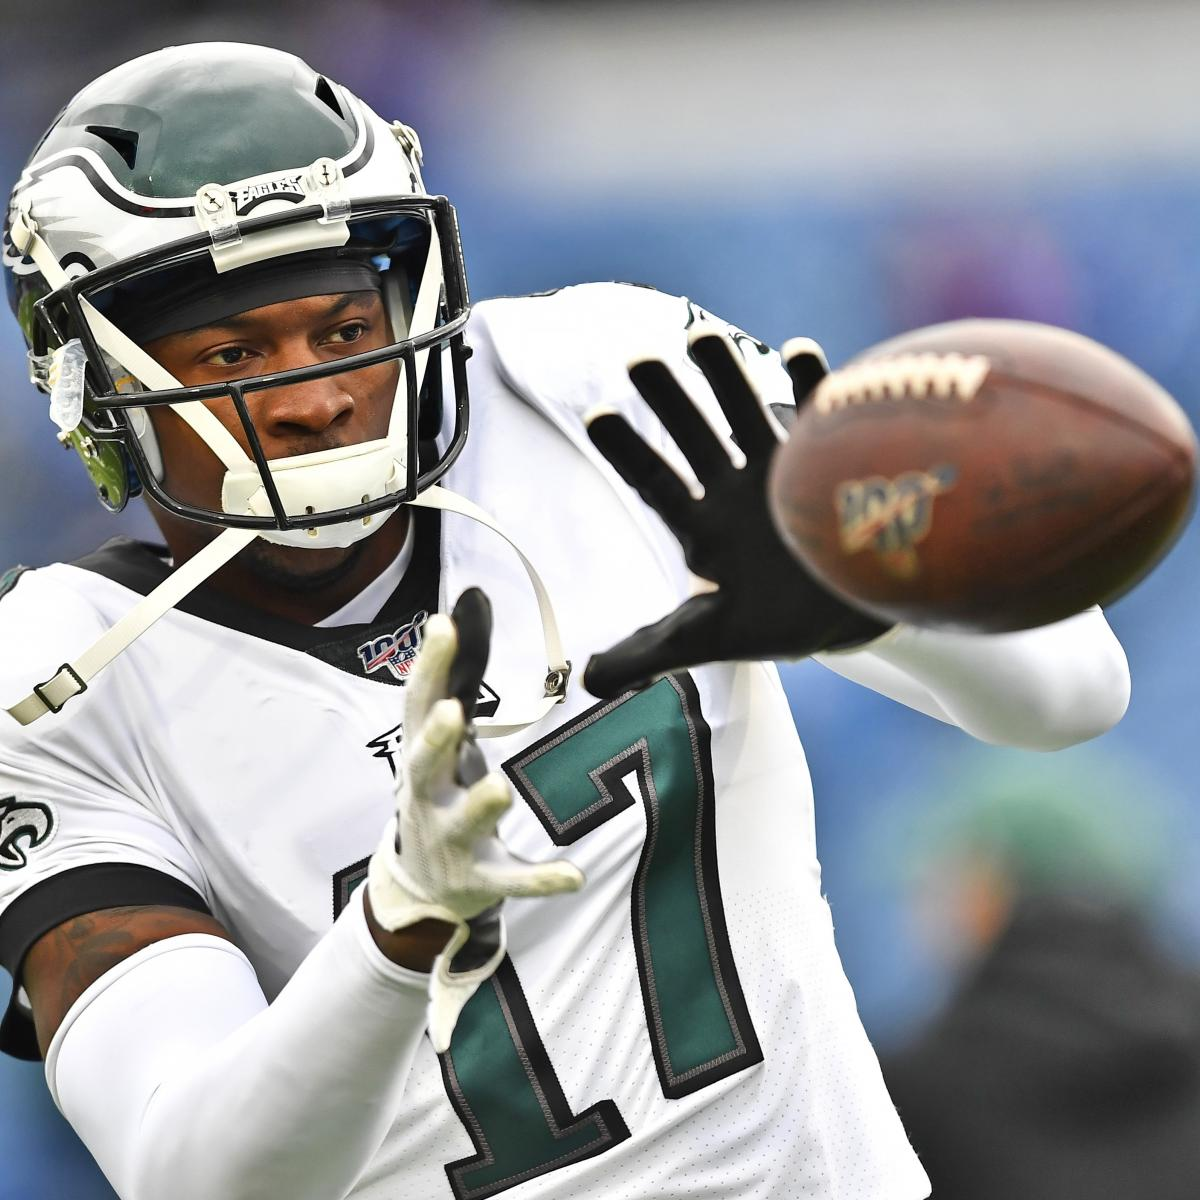 Potential Trade Packages, Landing Spots for Alshon Jeffery